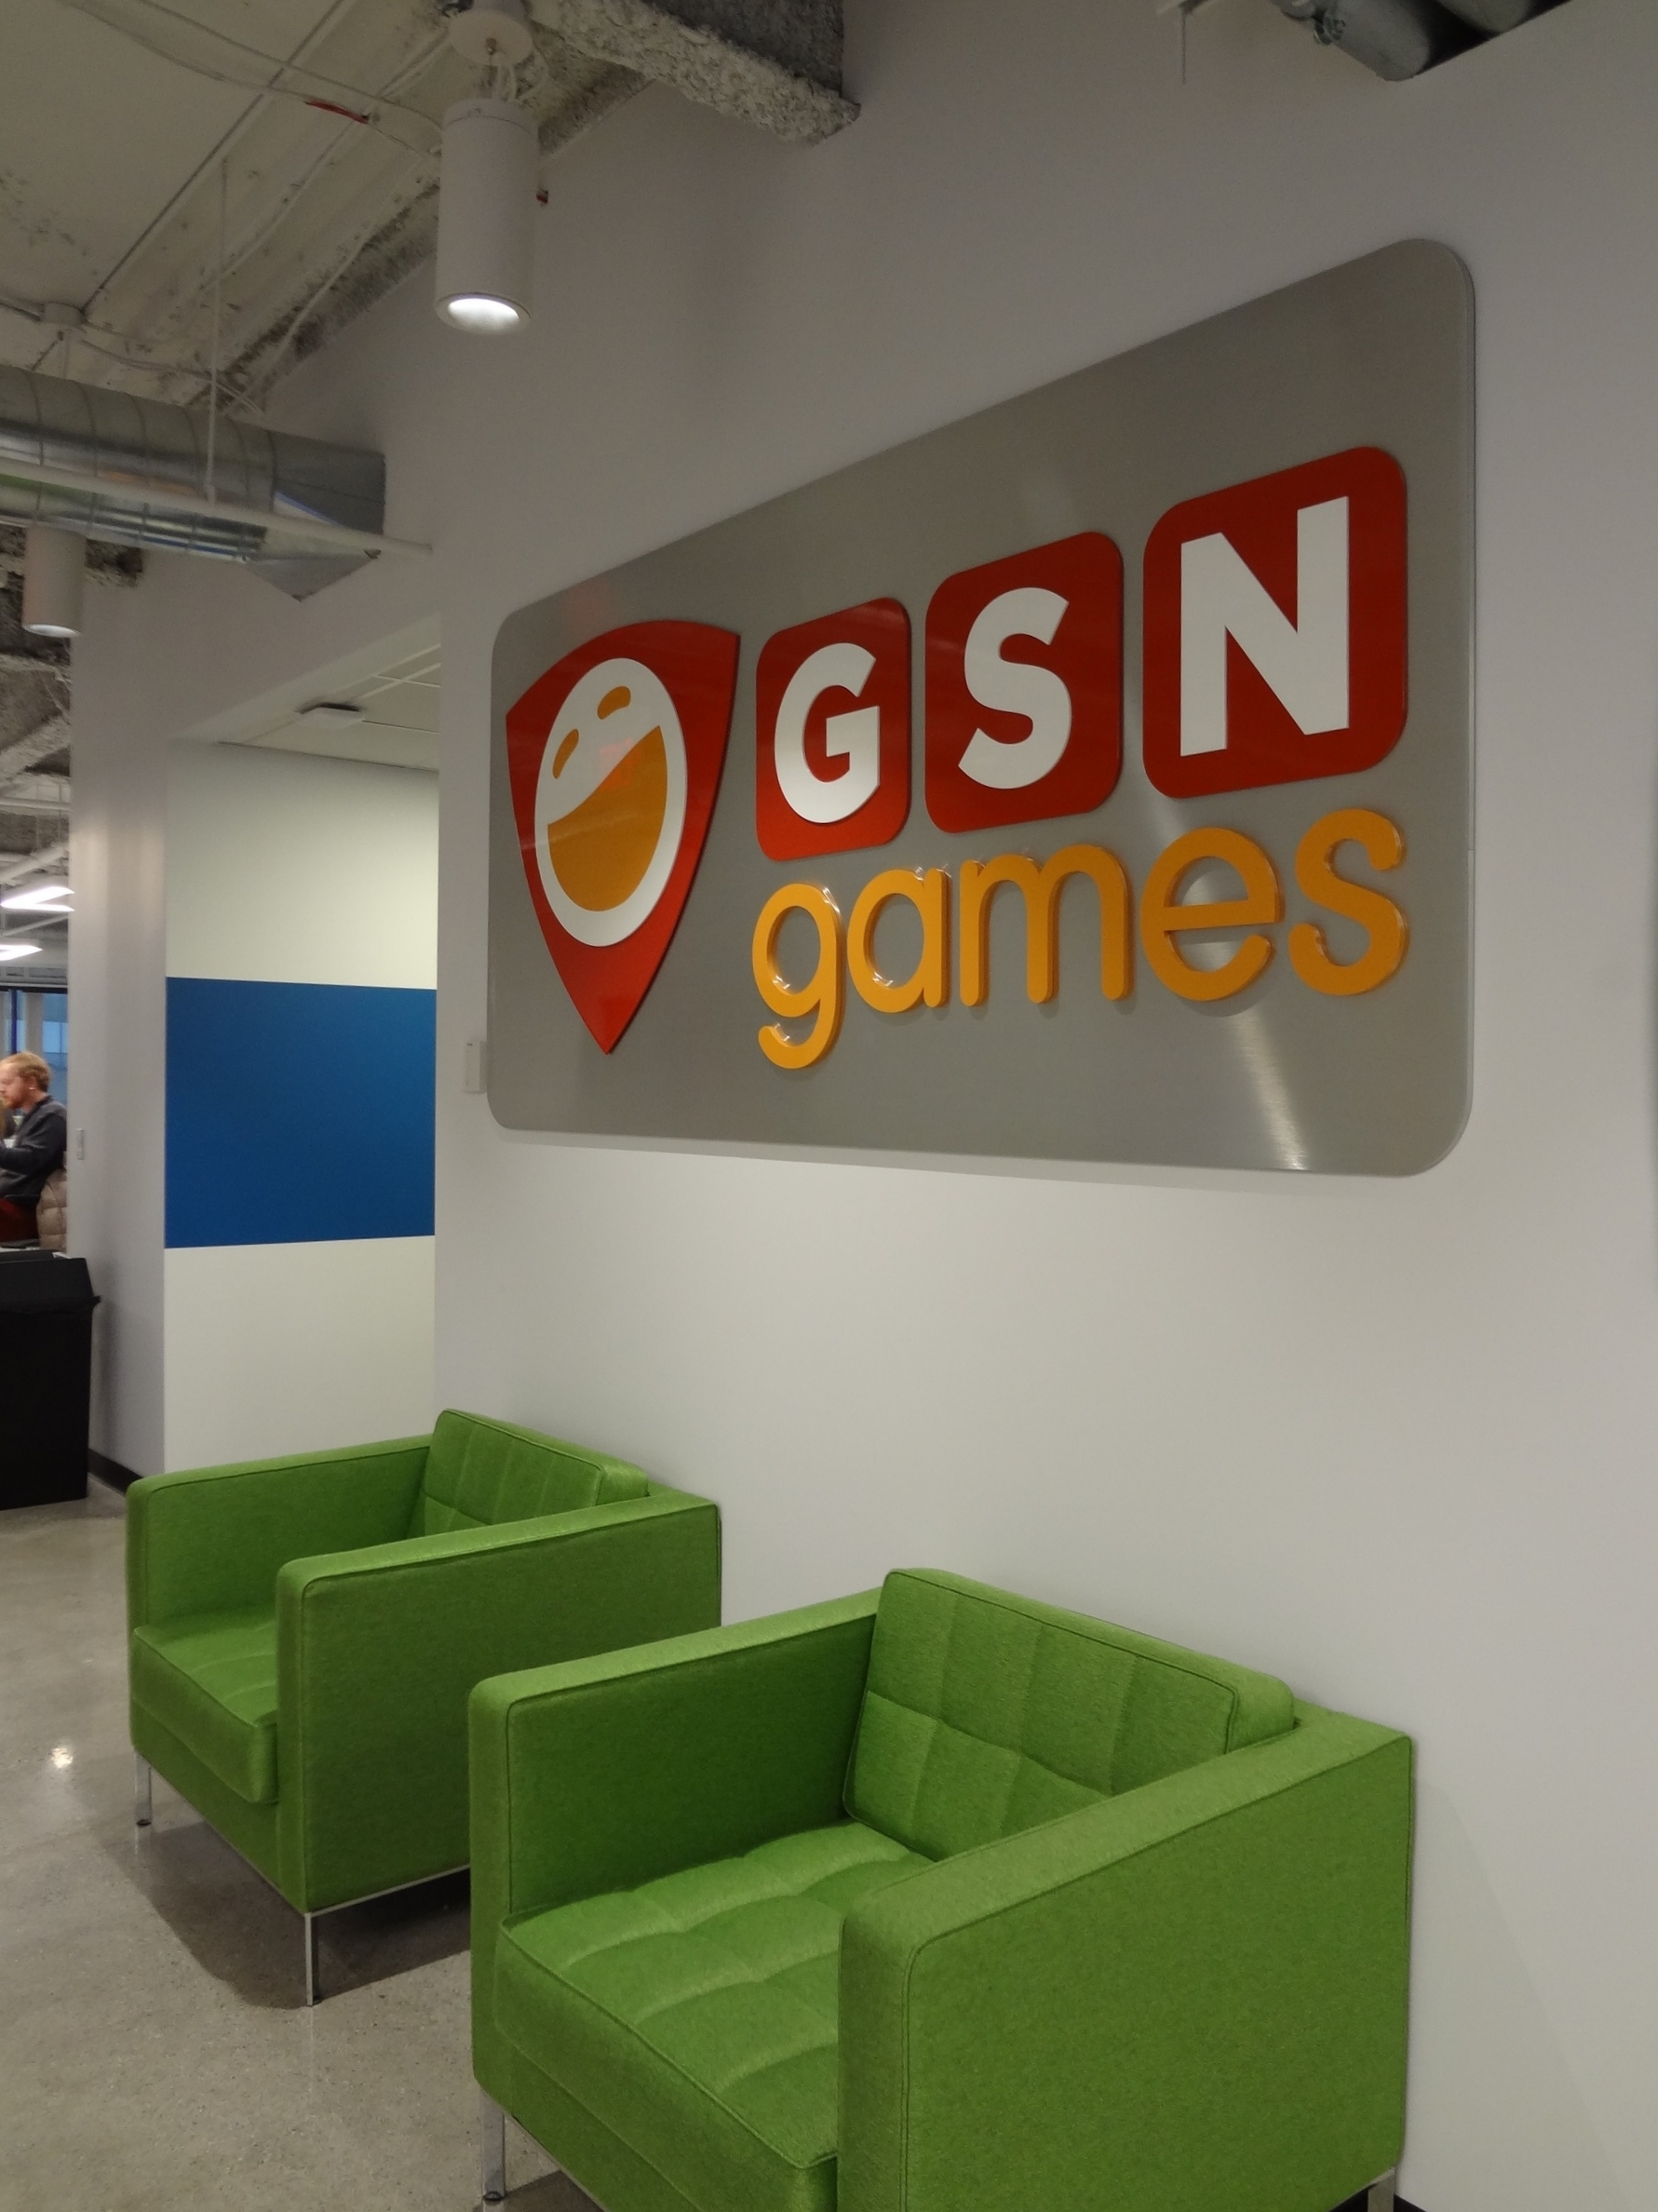 GSN w Green Chairs 1.jpg